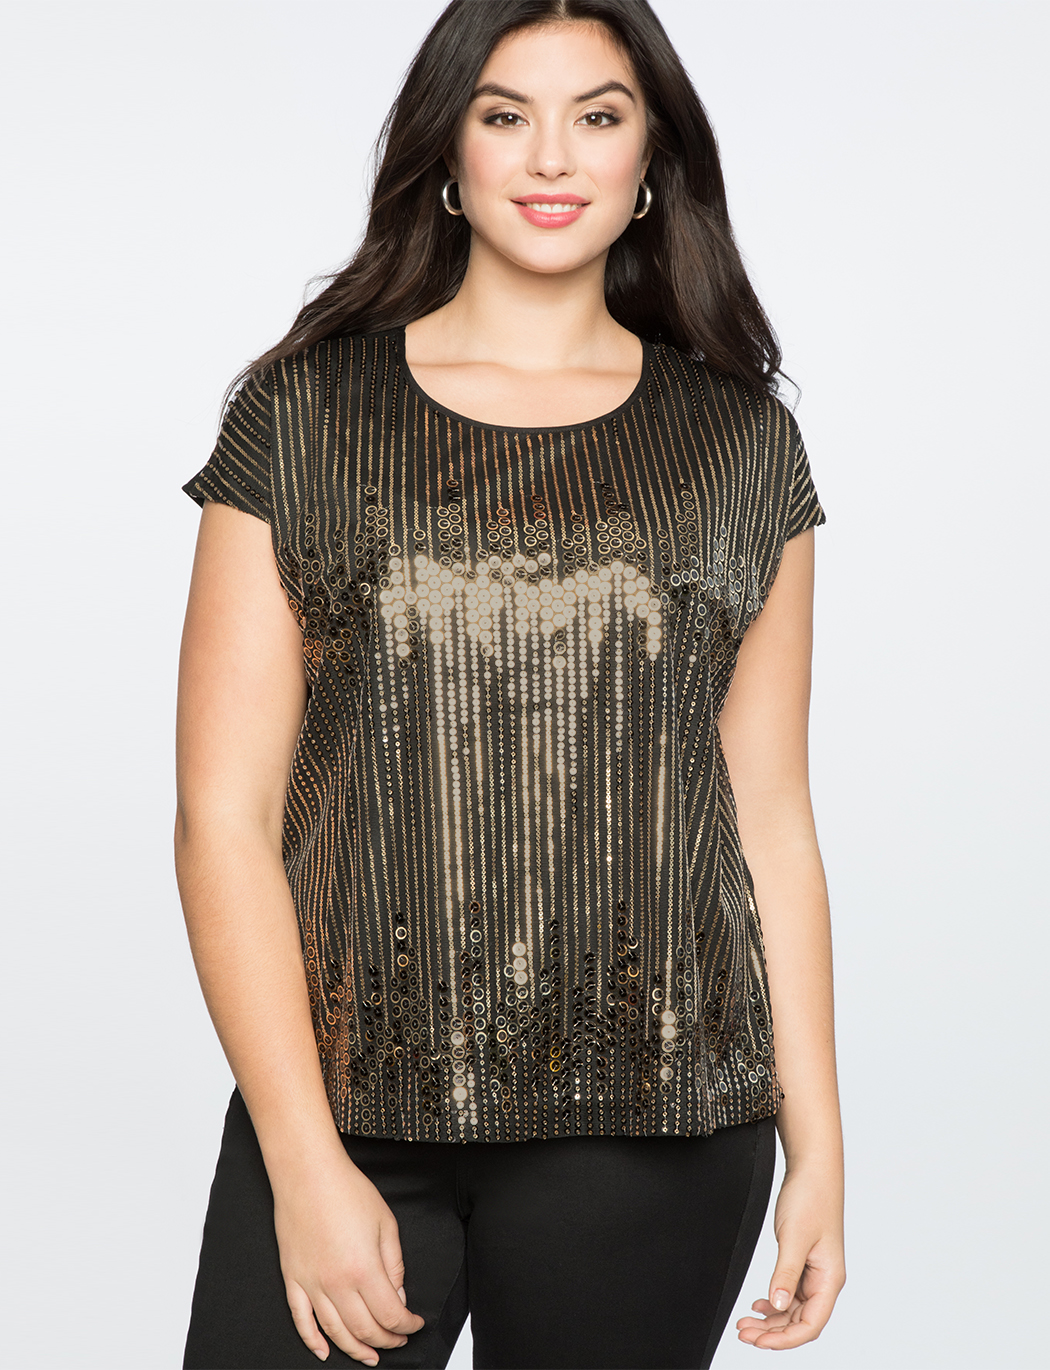 b07878790b0 Sequin Top